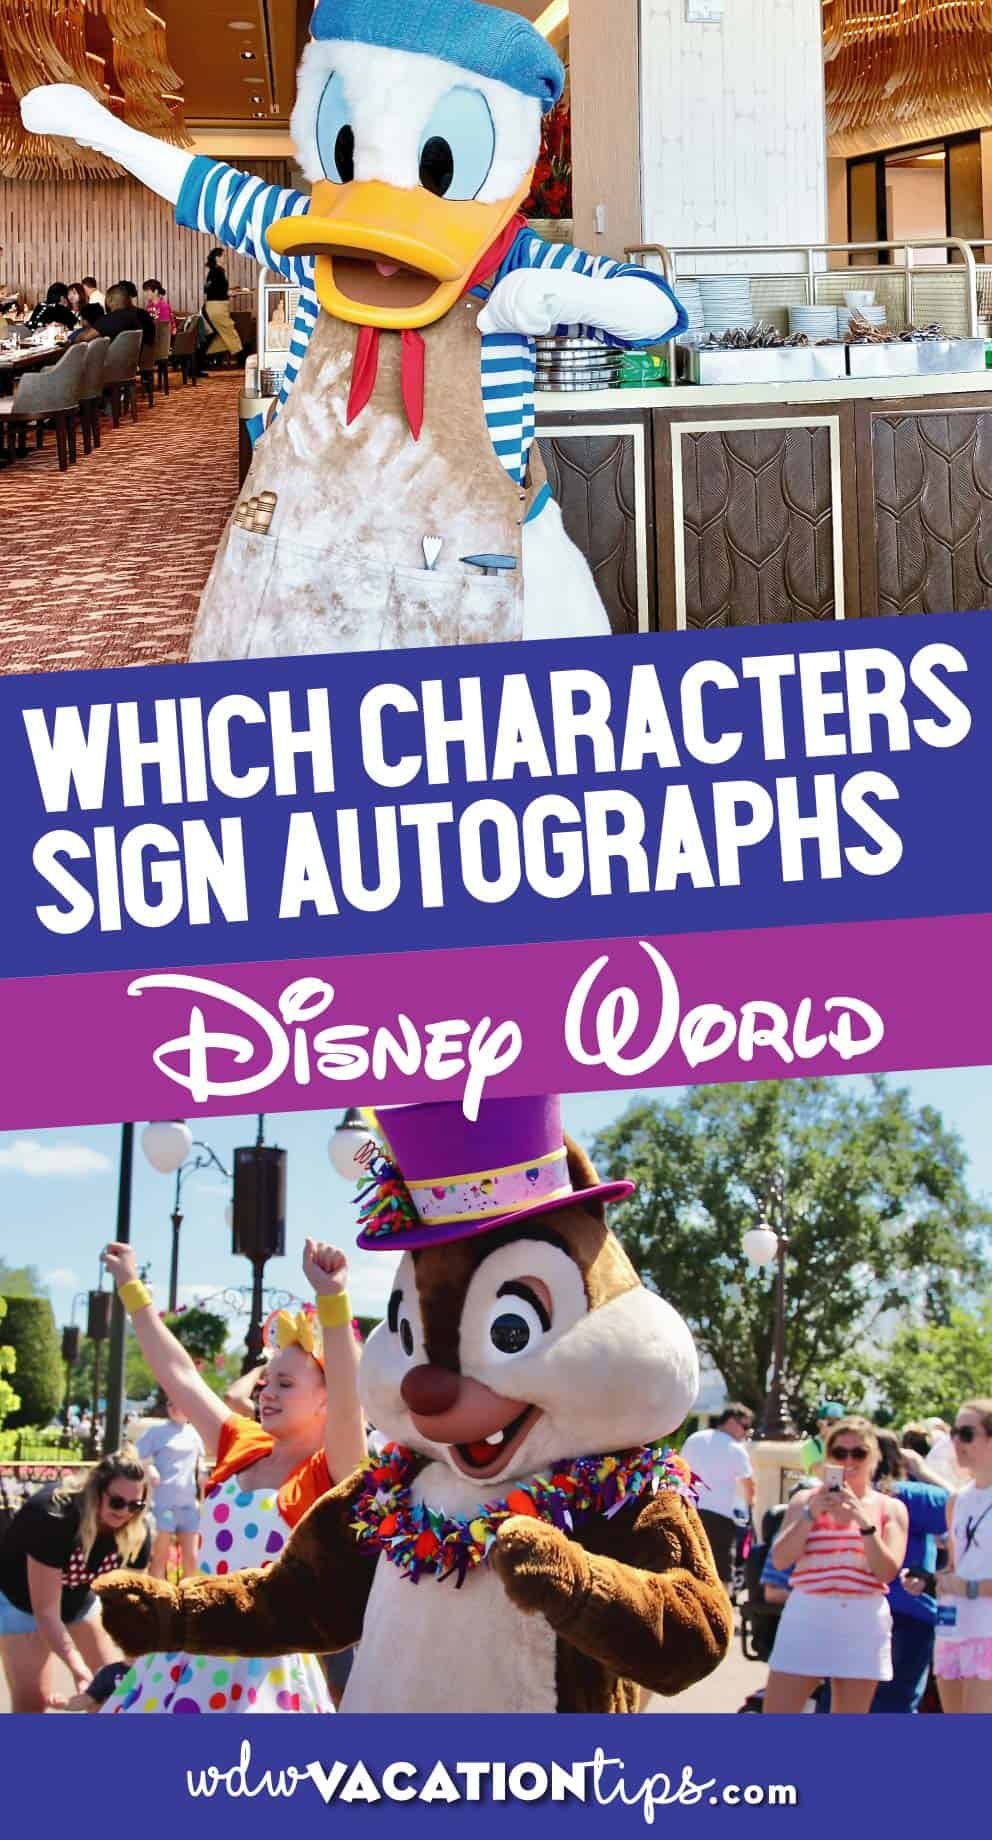 Which Characters Sign Autographs at Disney? 1